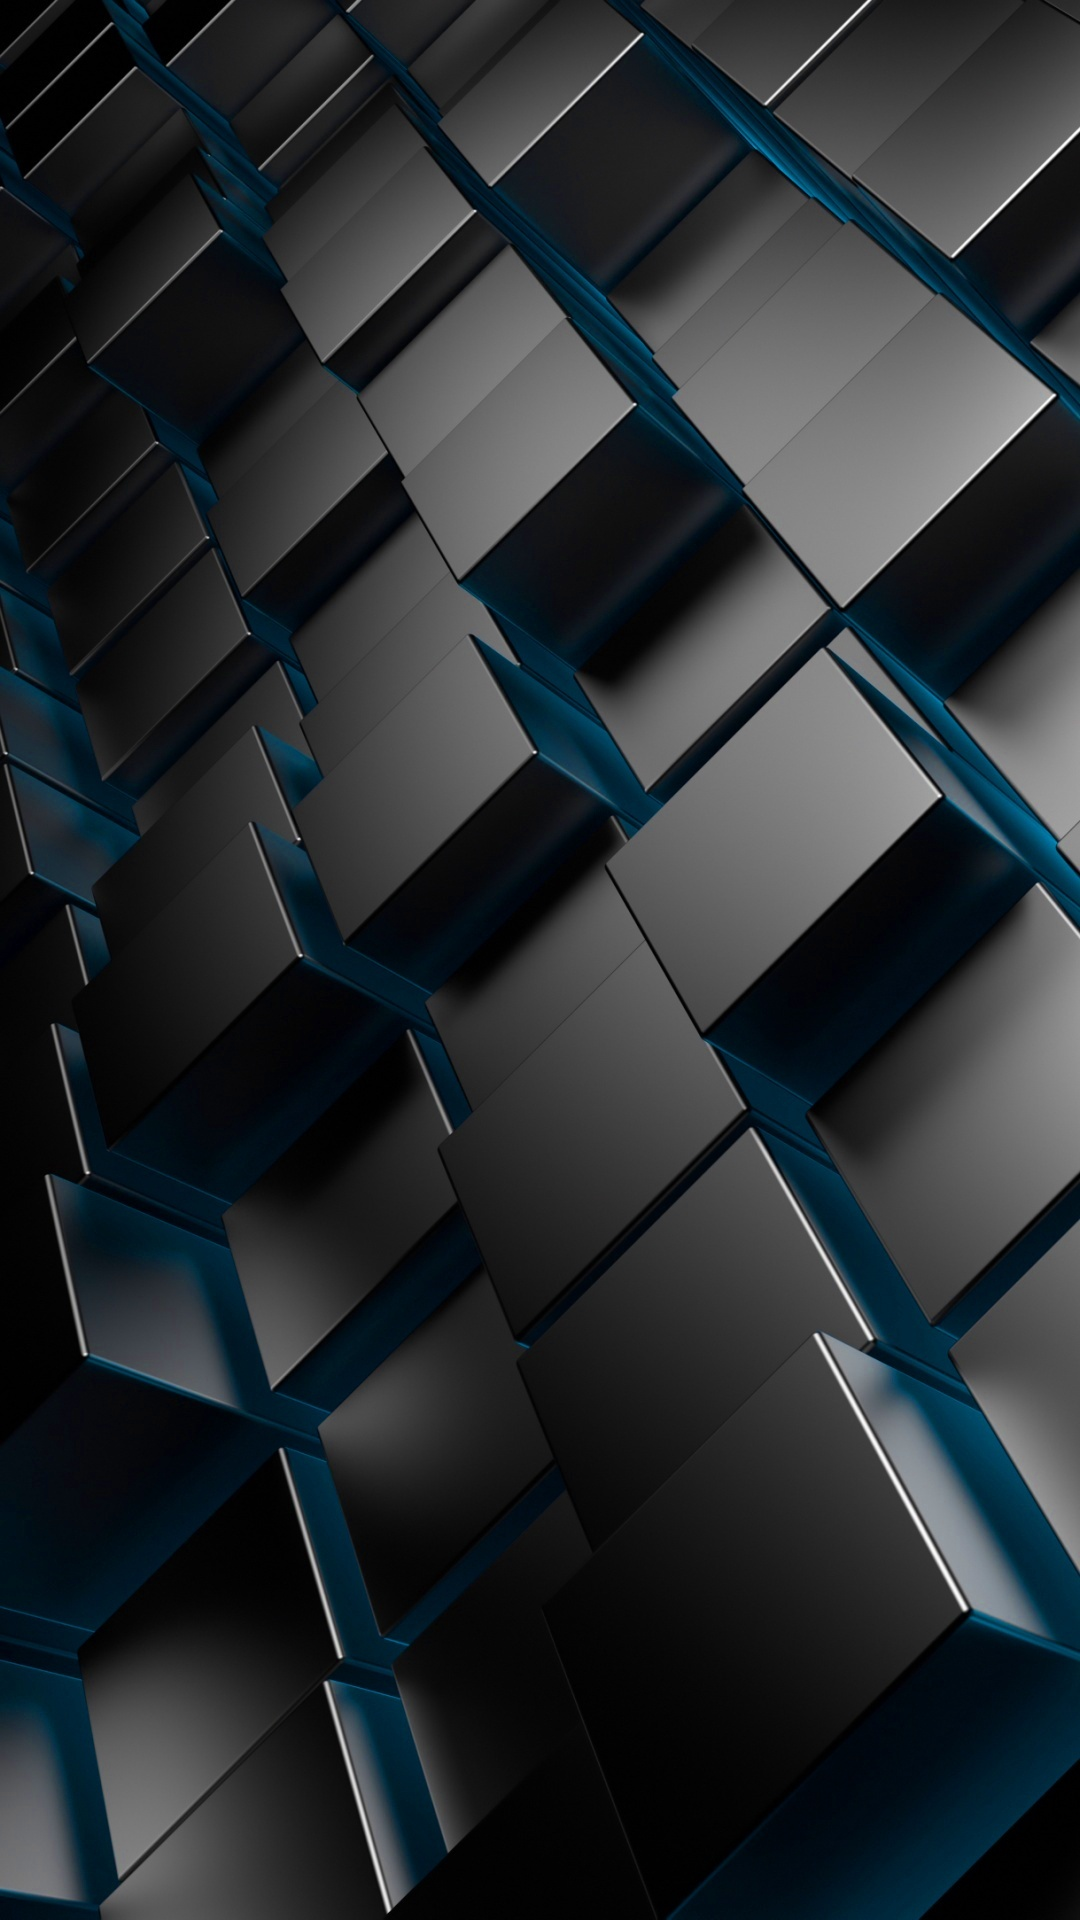 3D Metal Cubes Blue Android wallpaper